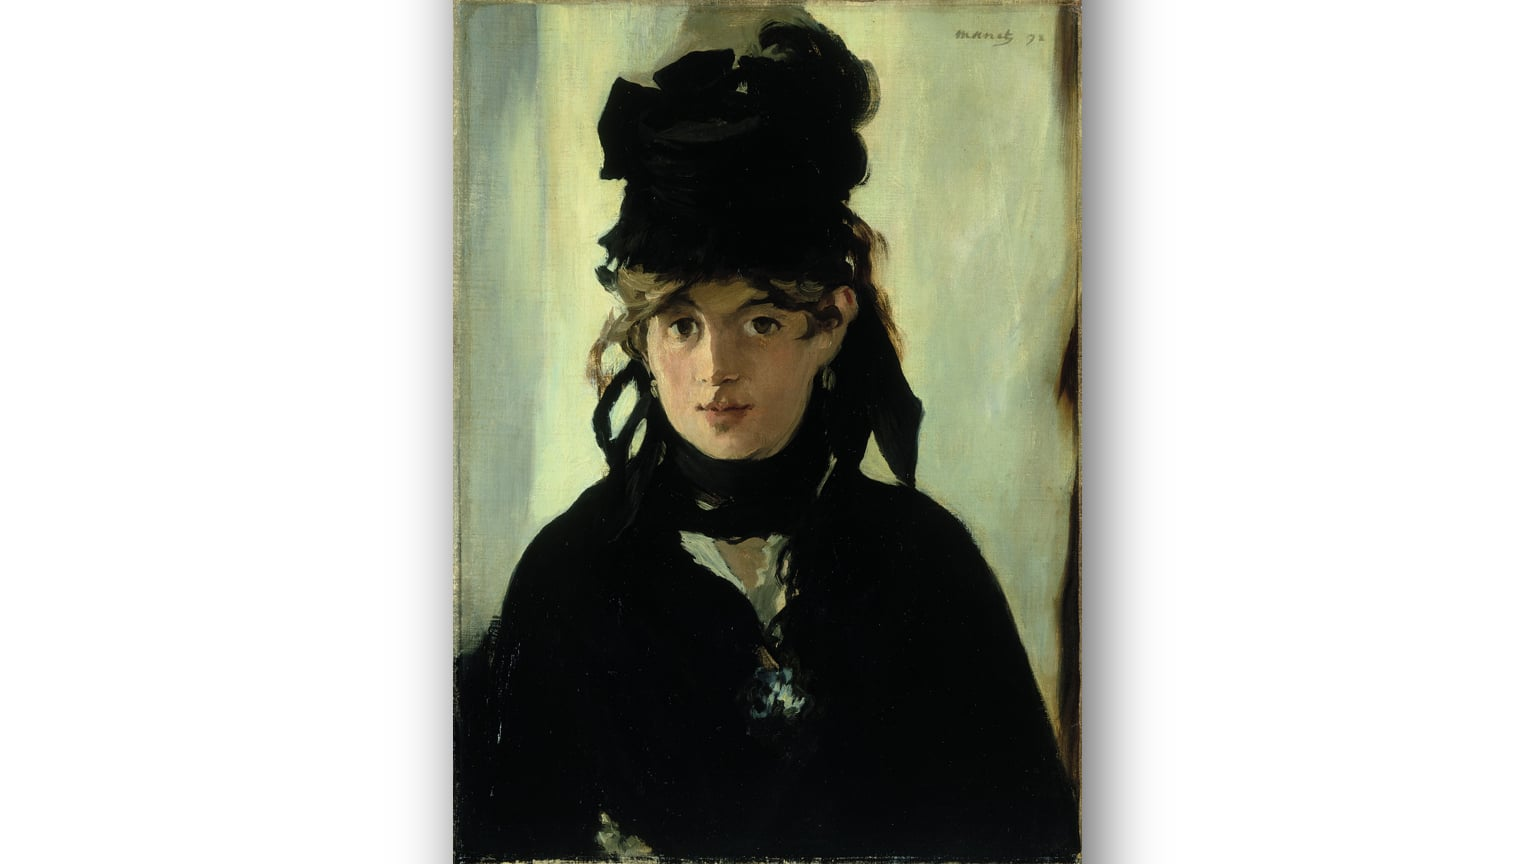 5. Manet: Portraying Life, Royal Academy - Reduced price with National Art Pass